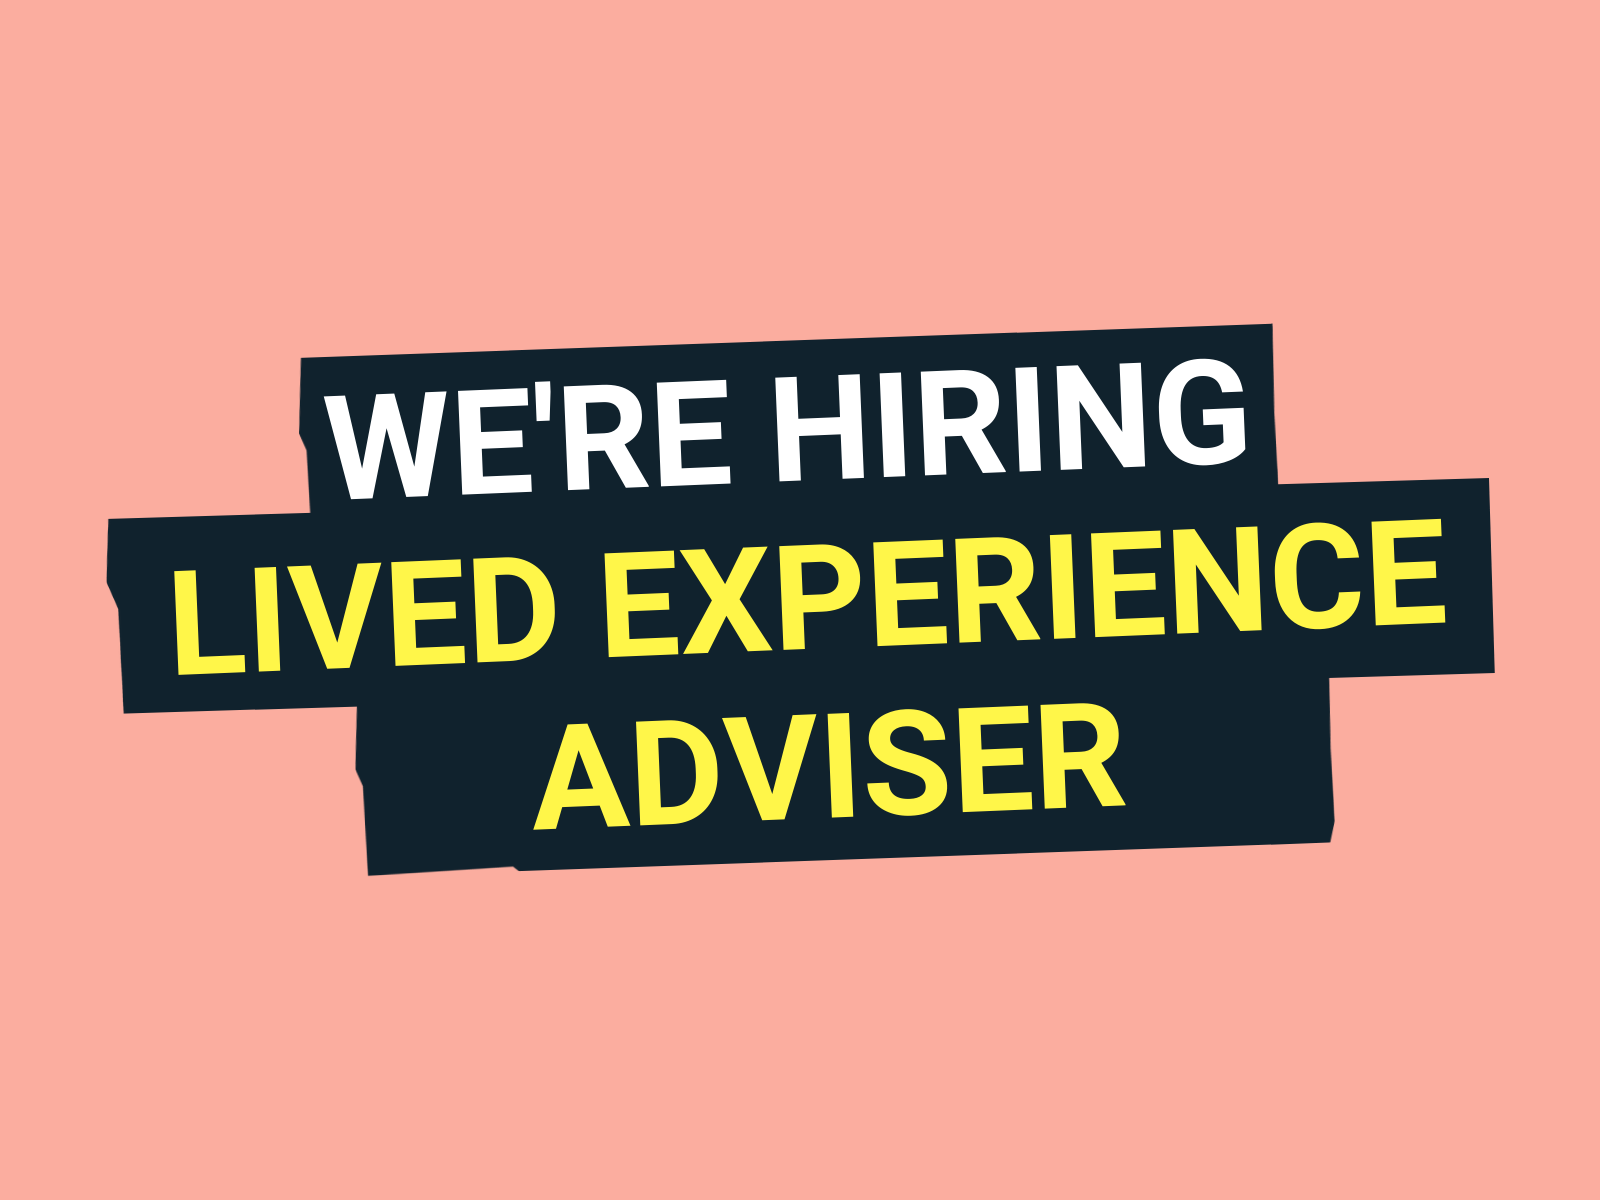 We're hiring: Lived Experience Adviser